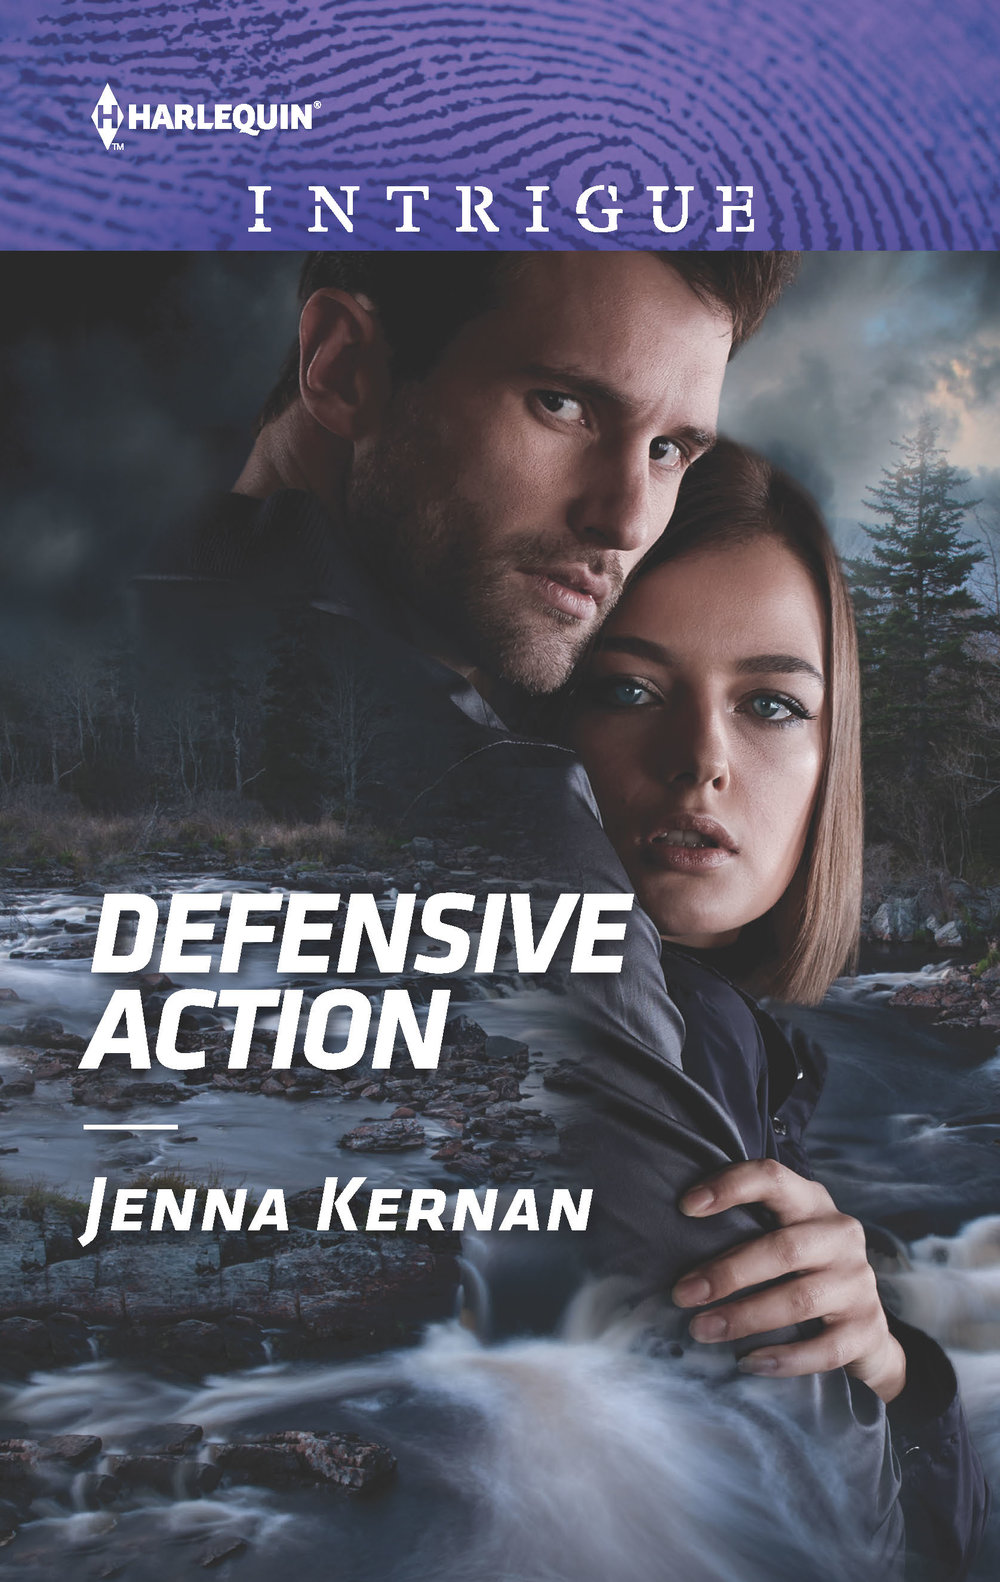 Defensive Action - Ryan Carr's mission is to deliver top secret intel—not guard I.T. expert Haley Nobel, the unsuspecting woman who saved him while he was in a shoot-out. But with bullets flying, Ryan and Haley have no choice except to rely on each other and their survival instincts. With both of their lives on the line, will they find the best defensive action is total engagement?